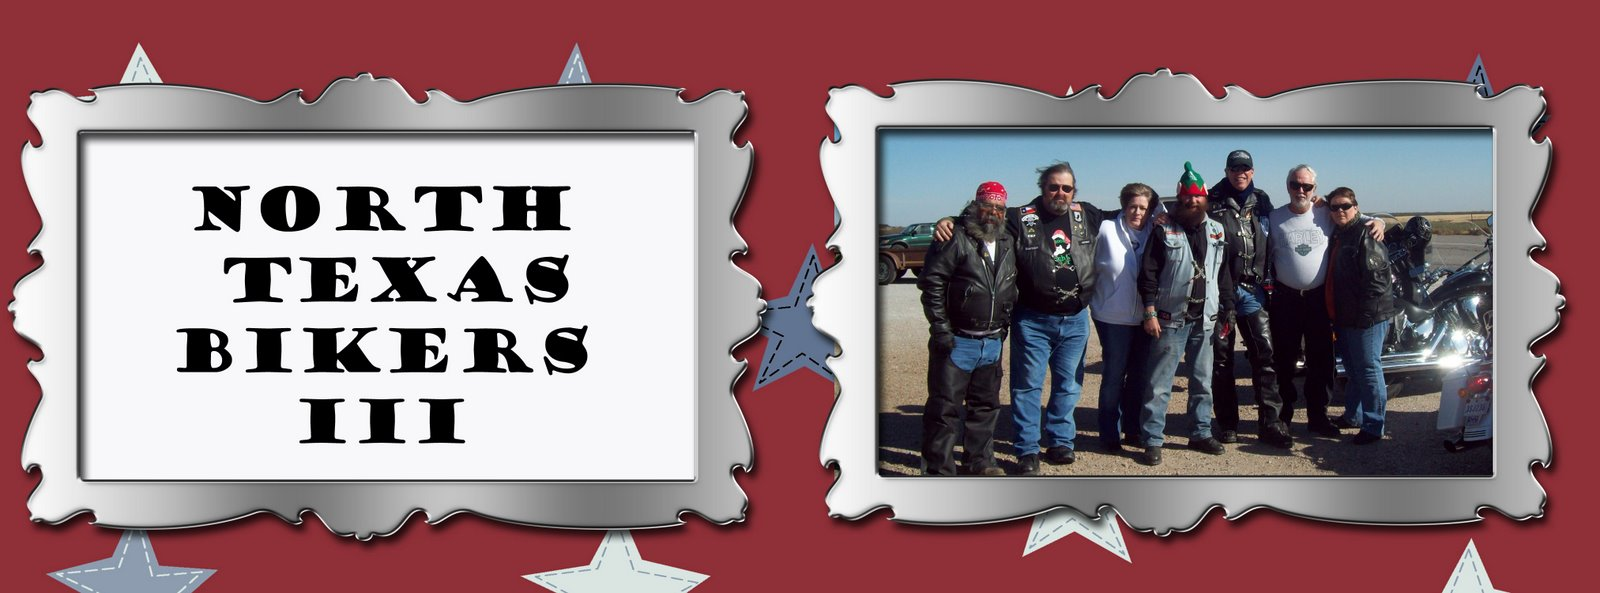 NORTH TEXAS BIKERS III